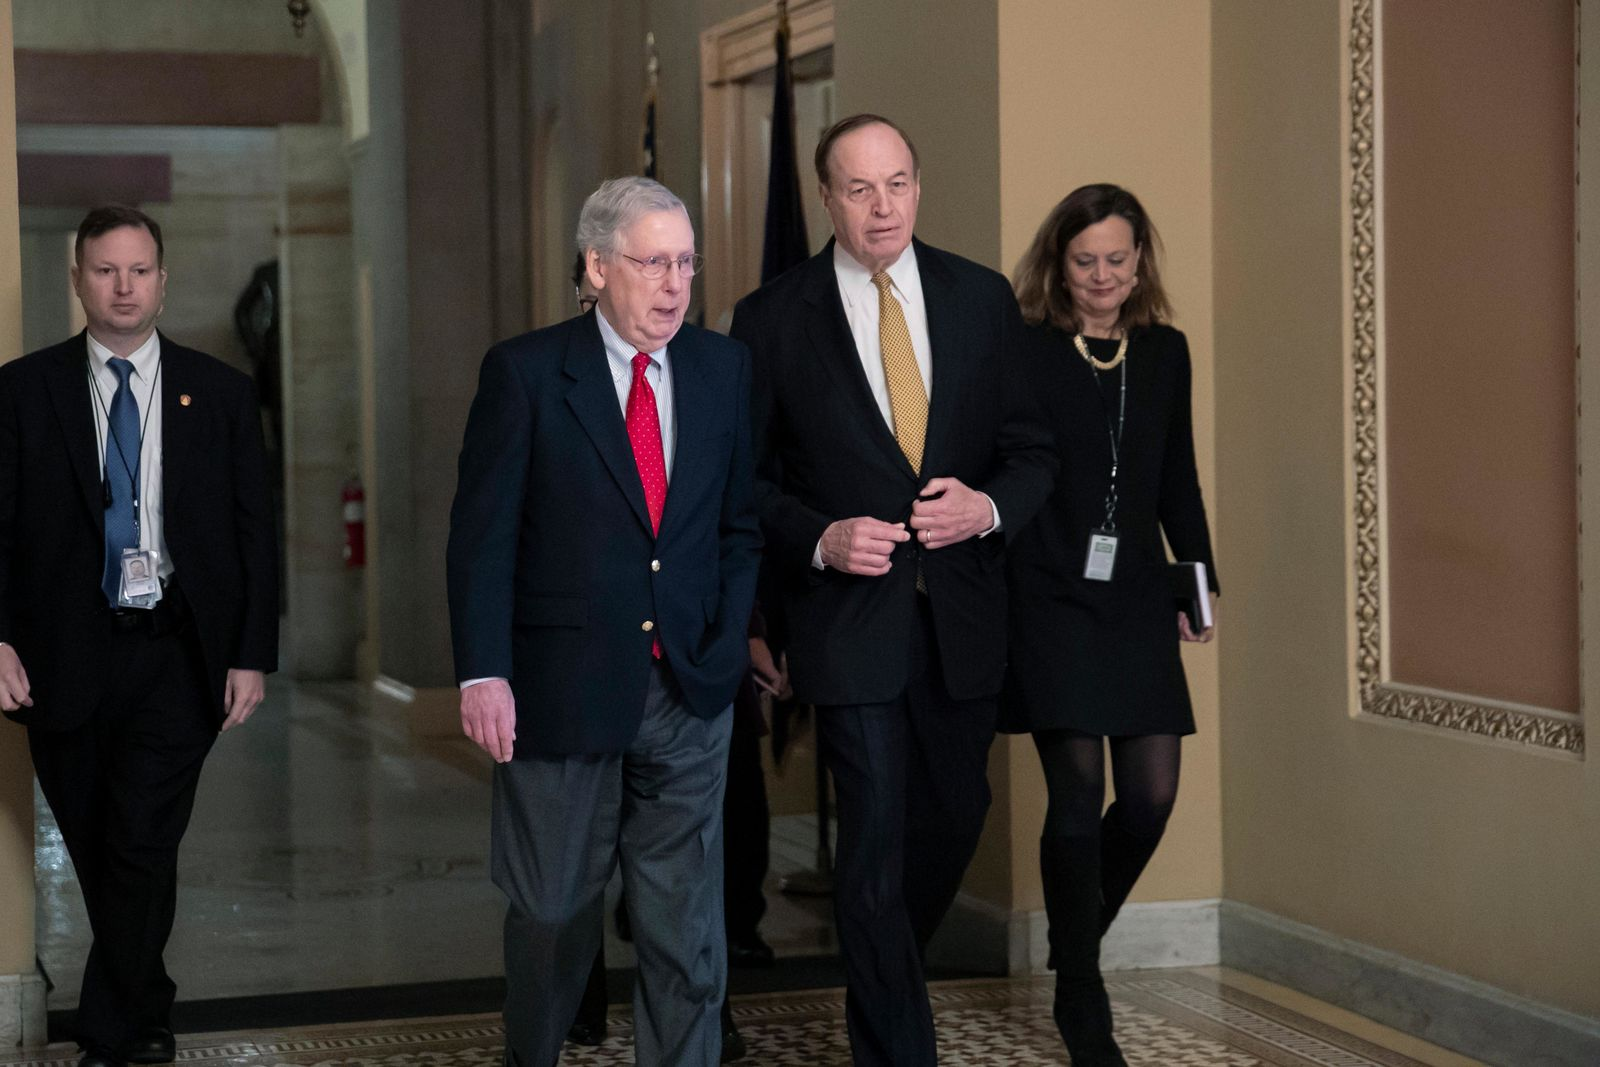 En route to a meeting at the White House, Senate Majority Leader Mitch McConnell, R-Ky., left, walks with Sen. Richard C. Shelby, R-Ala. (AP Photo/J. Scott Applewhite)